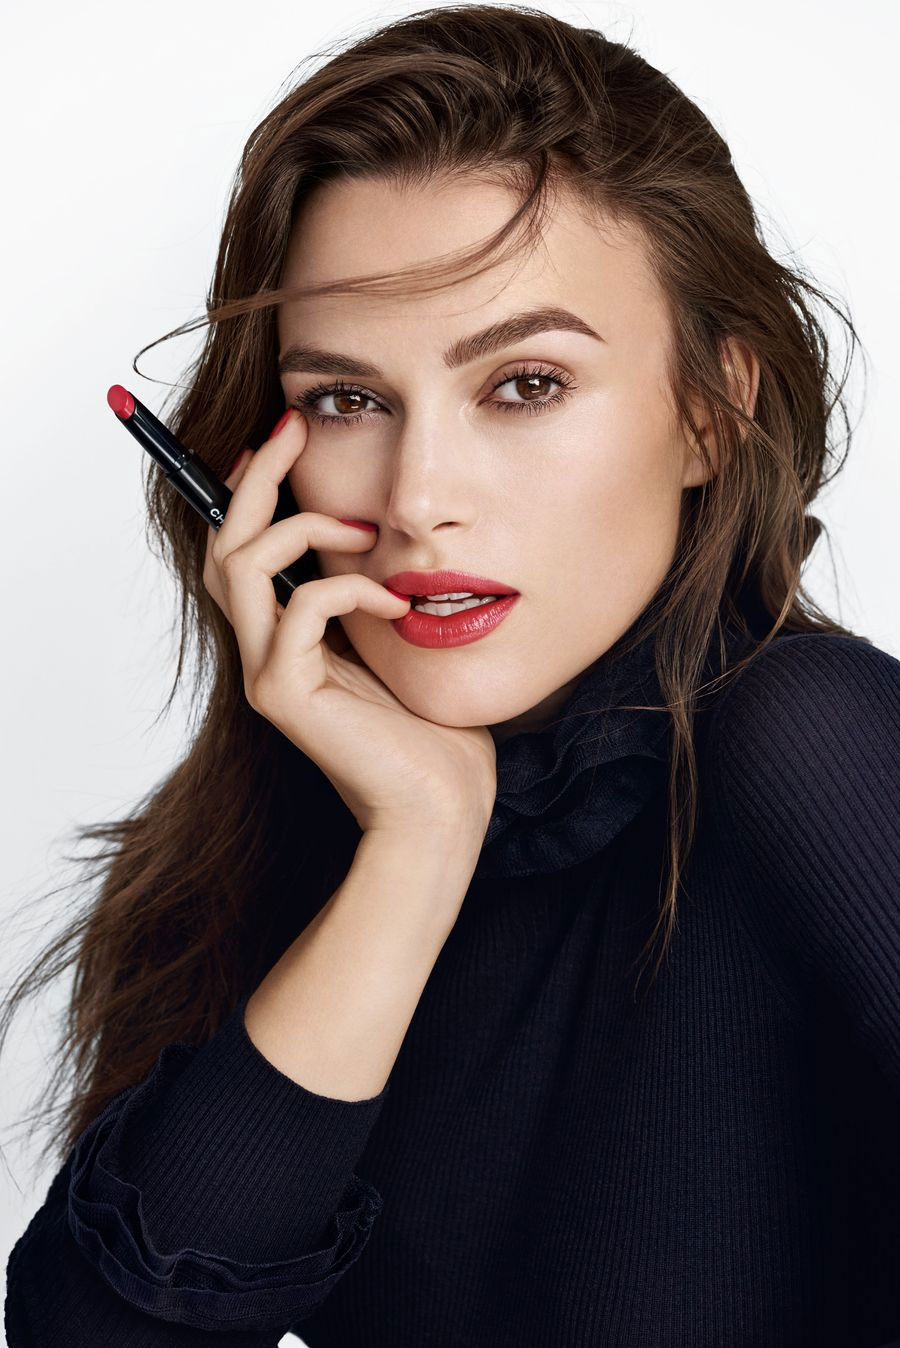 Keira Knightley Actress Celebrity Endorsements